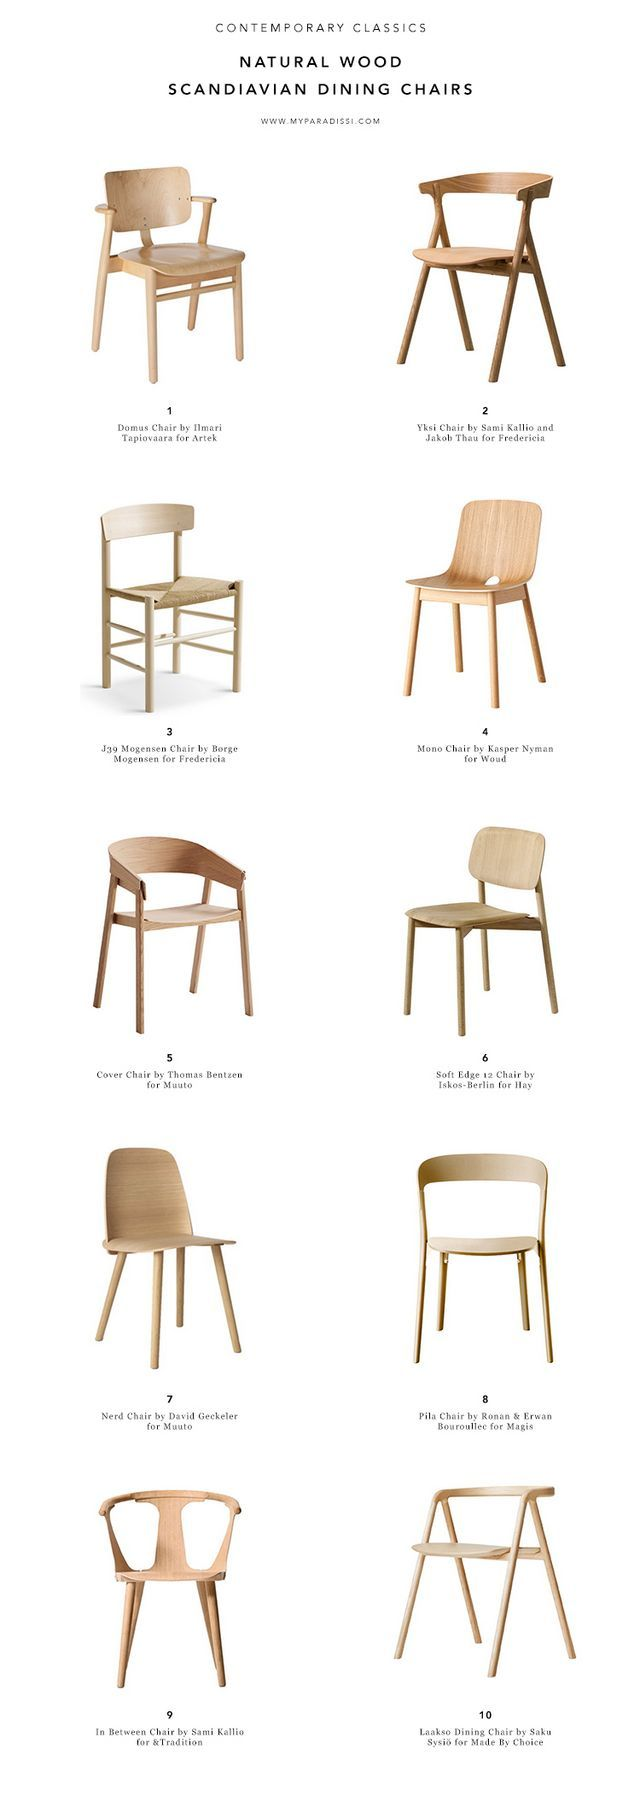 Contemporary Classics Scandinavian Natural Wood Dining Chairs My Paradissi Dining Chairs Modern Wood Chair Modern Dining Chairs